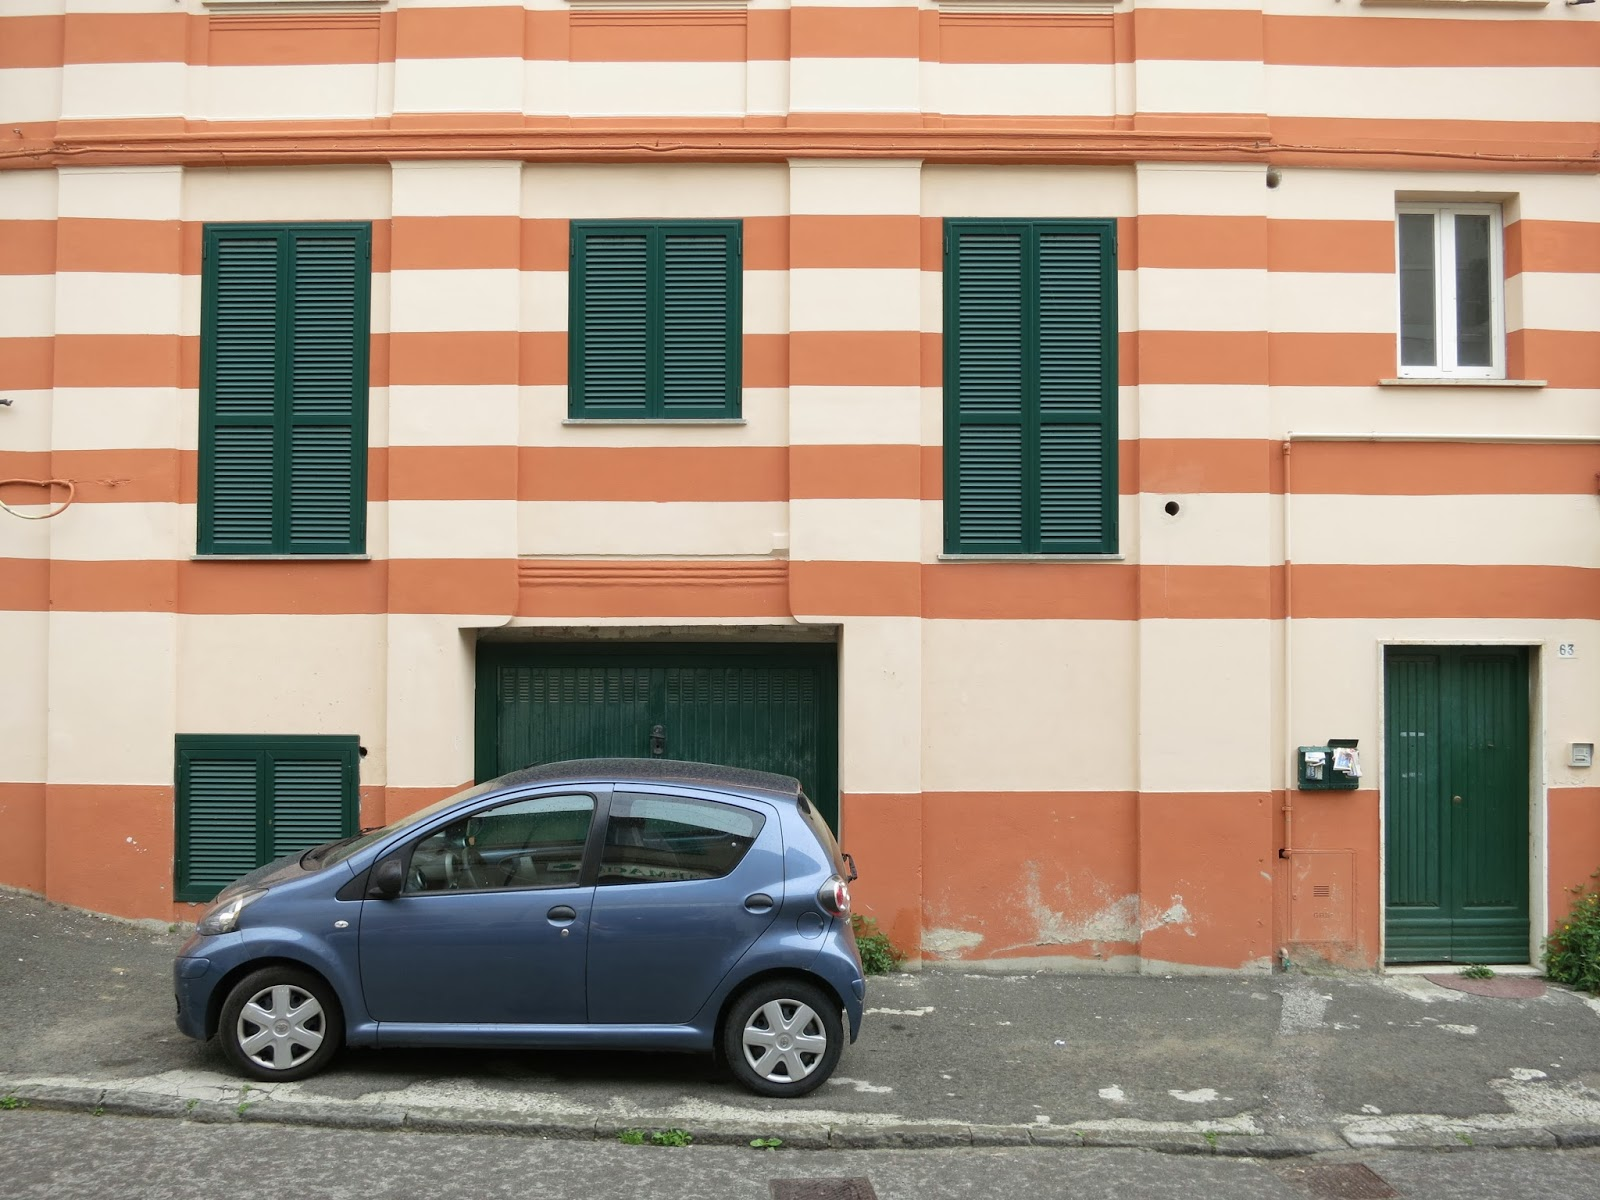 Parking violation in Liguria